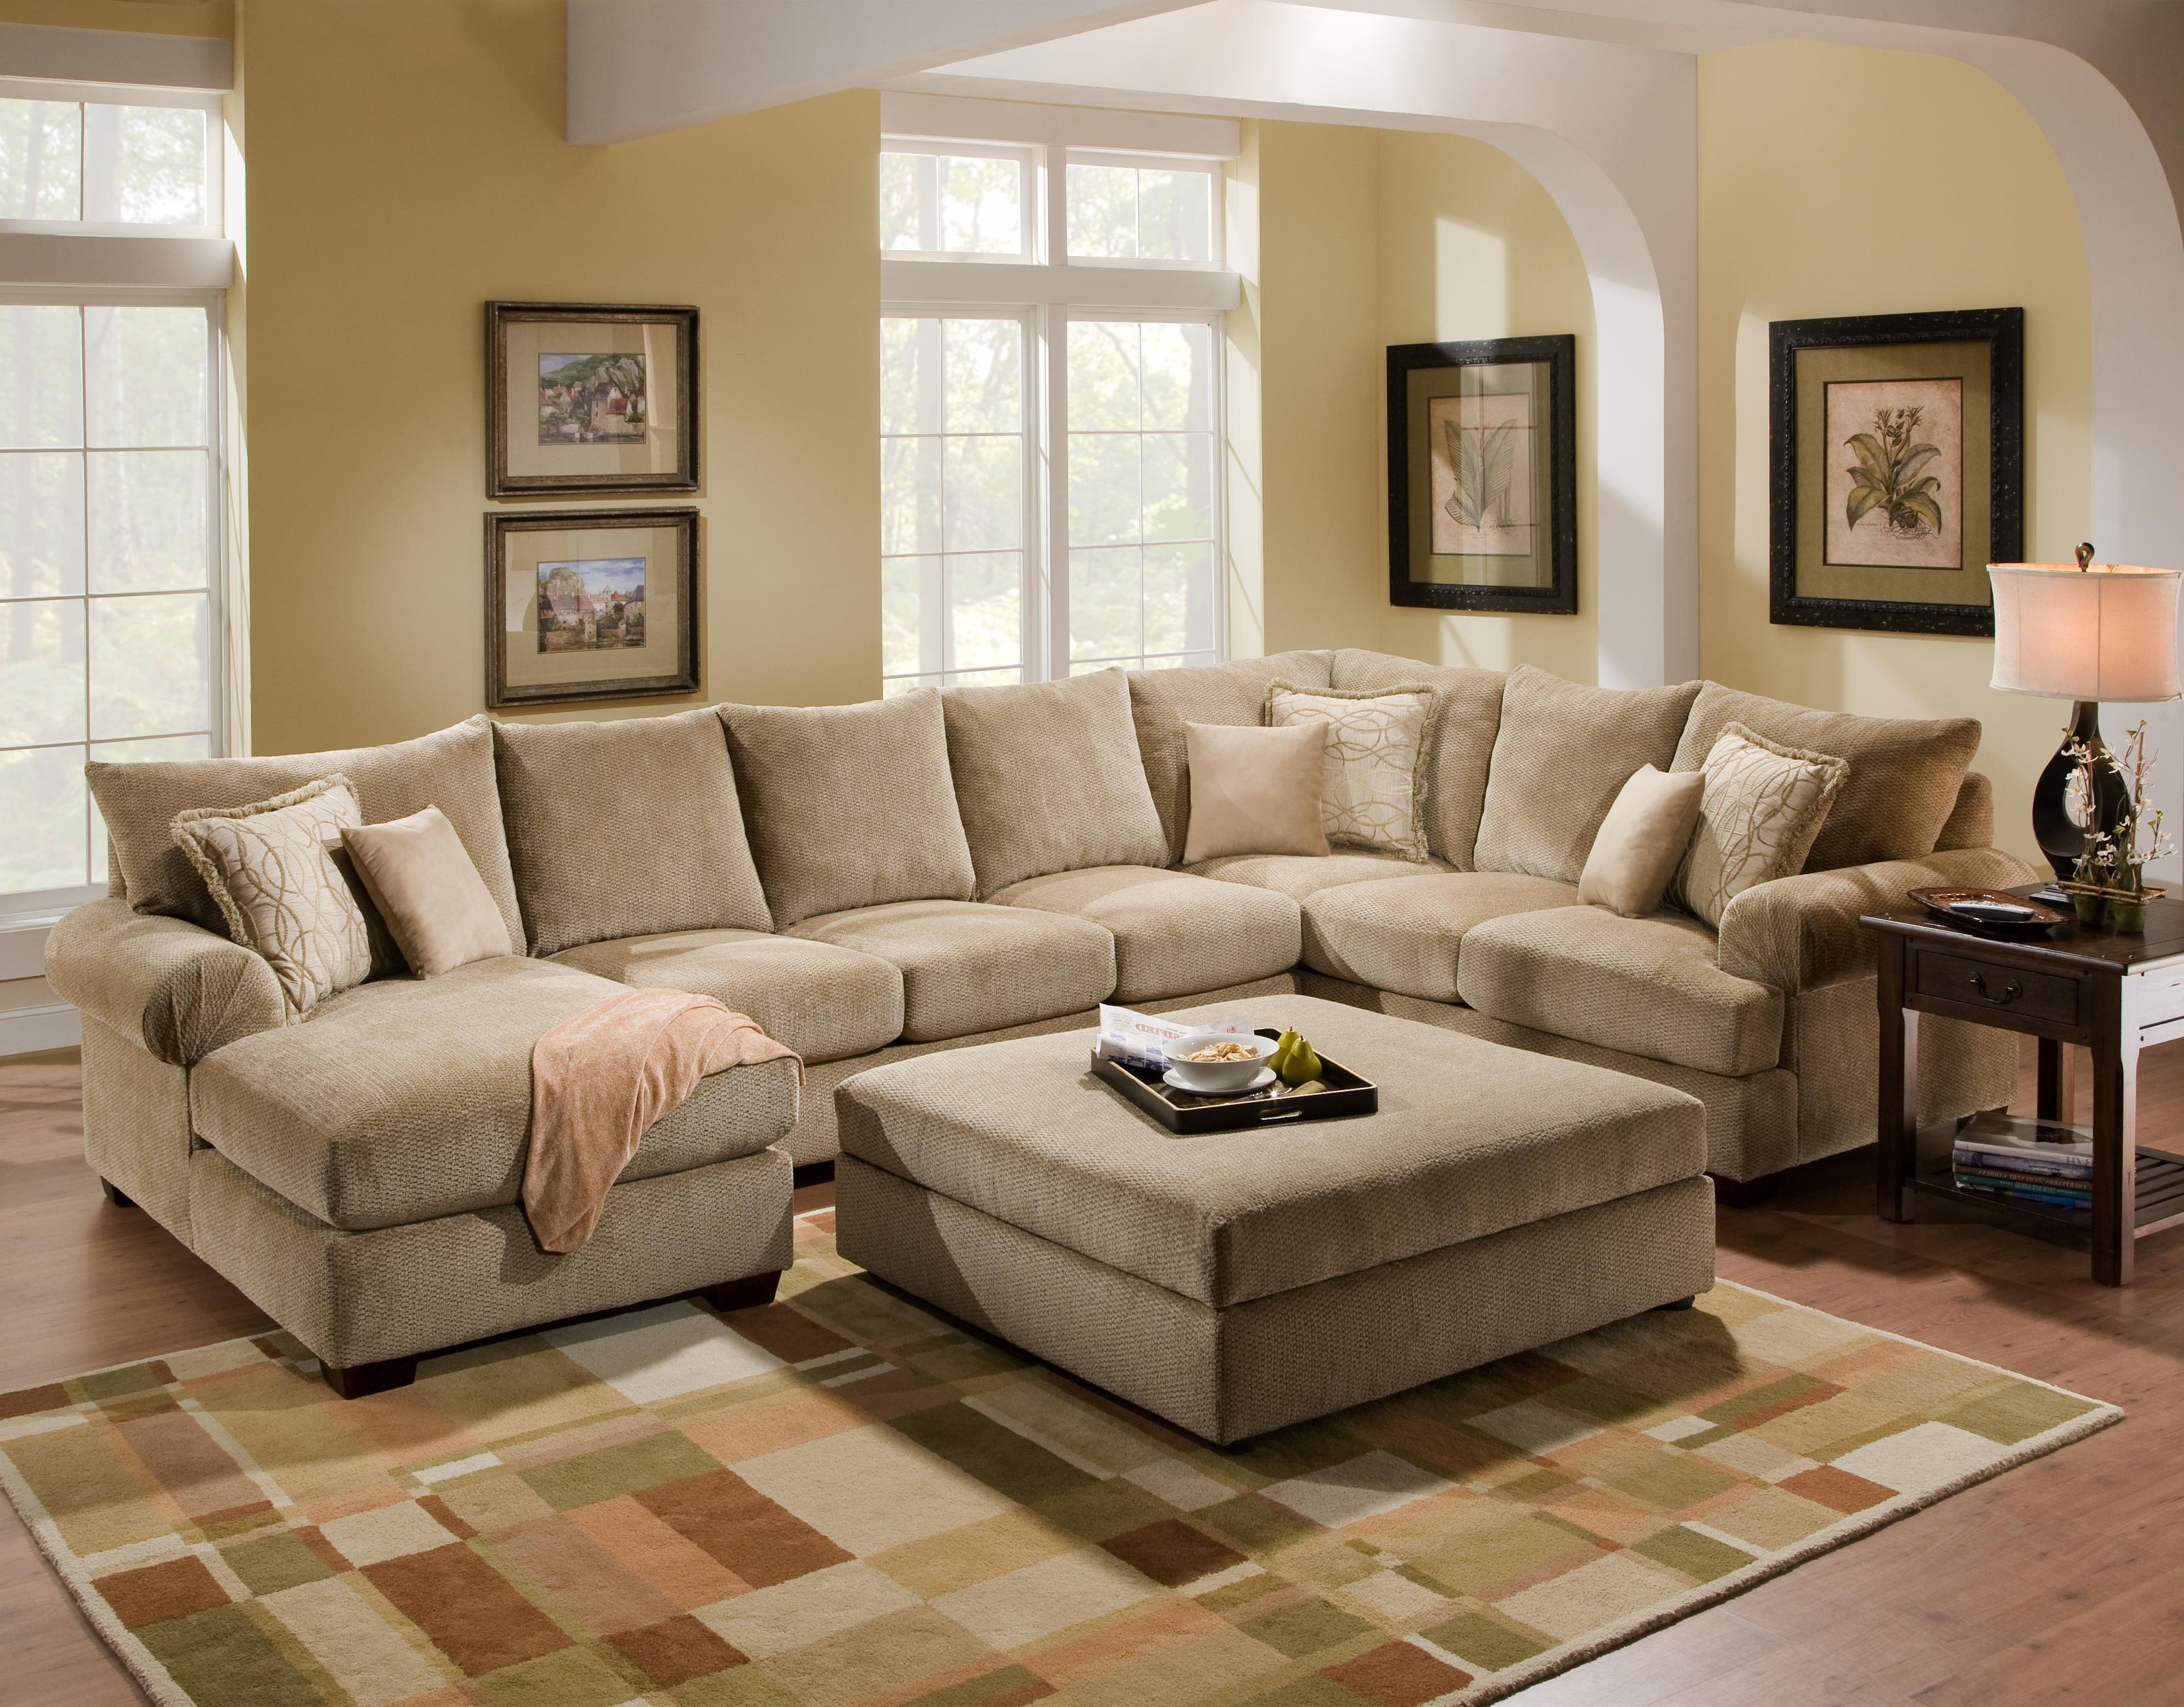 4510 Casual Sectional Sofa Group With Chaisecorinthian – Wolf Intended For Well Known Sam Levitz Sectional Sofas (View 2 of 20)